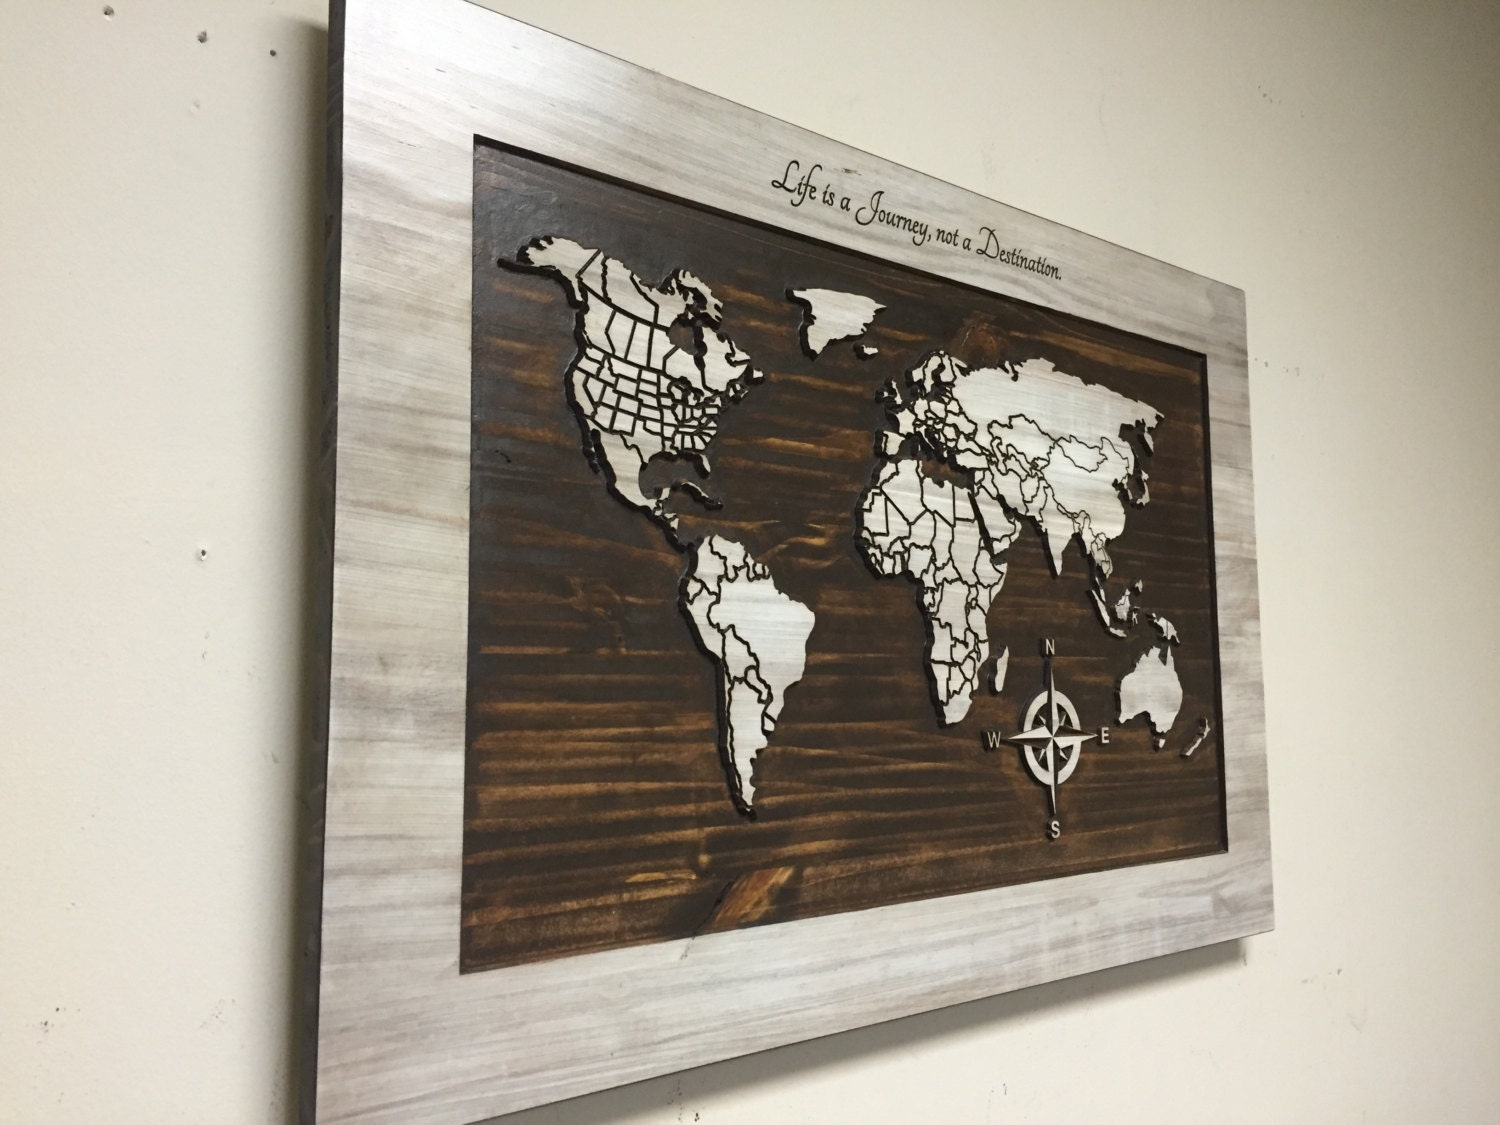 Custom Wood Wall Decor : Wood wall art carved world map home decor wooden life is a